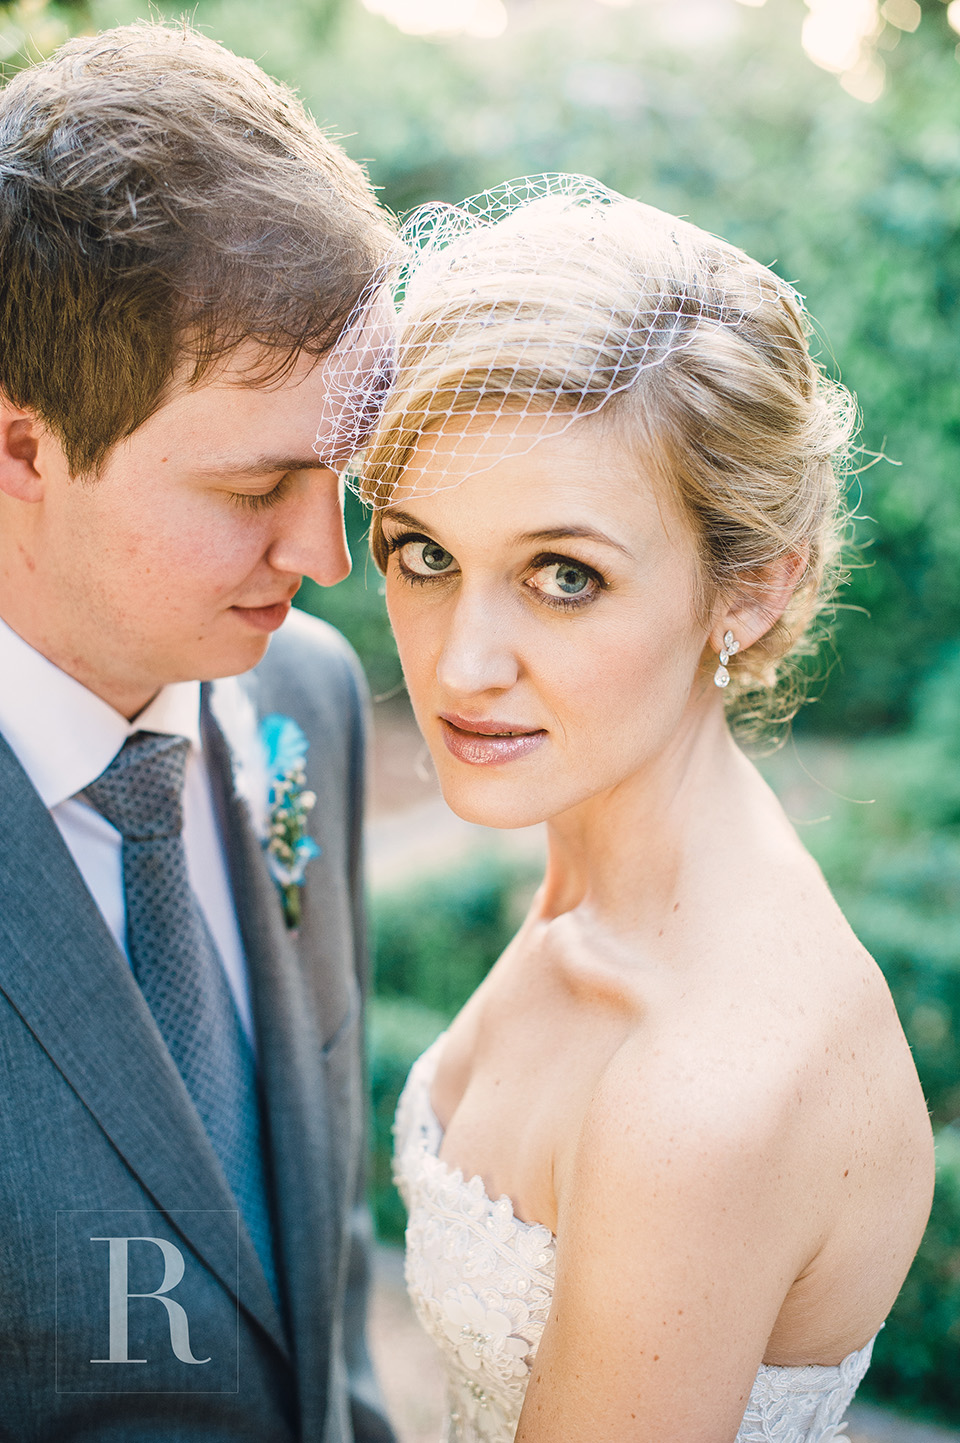 RYAN PARKER_WEDDING PHOTOGRAPHER_SOUTH AFRICA_JOHANNESBURG_MORRELLS_M&M-3007.jpg